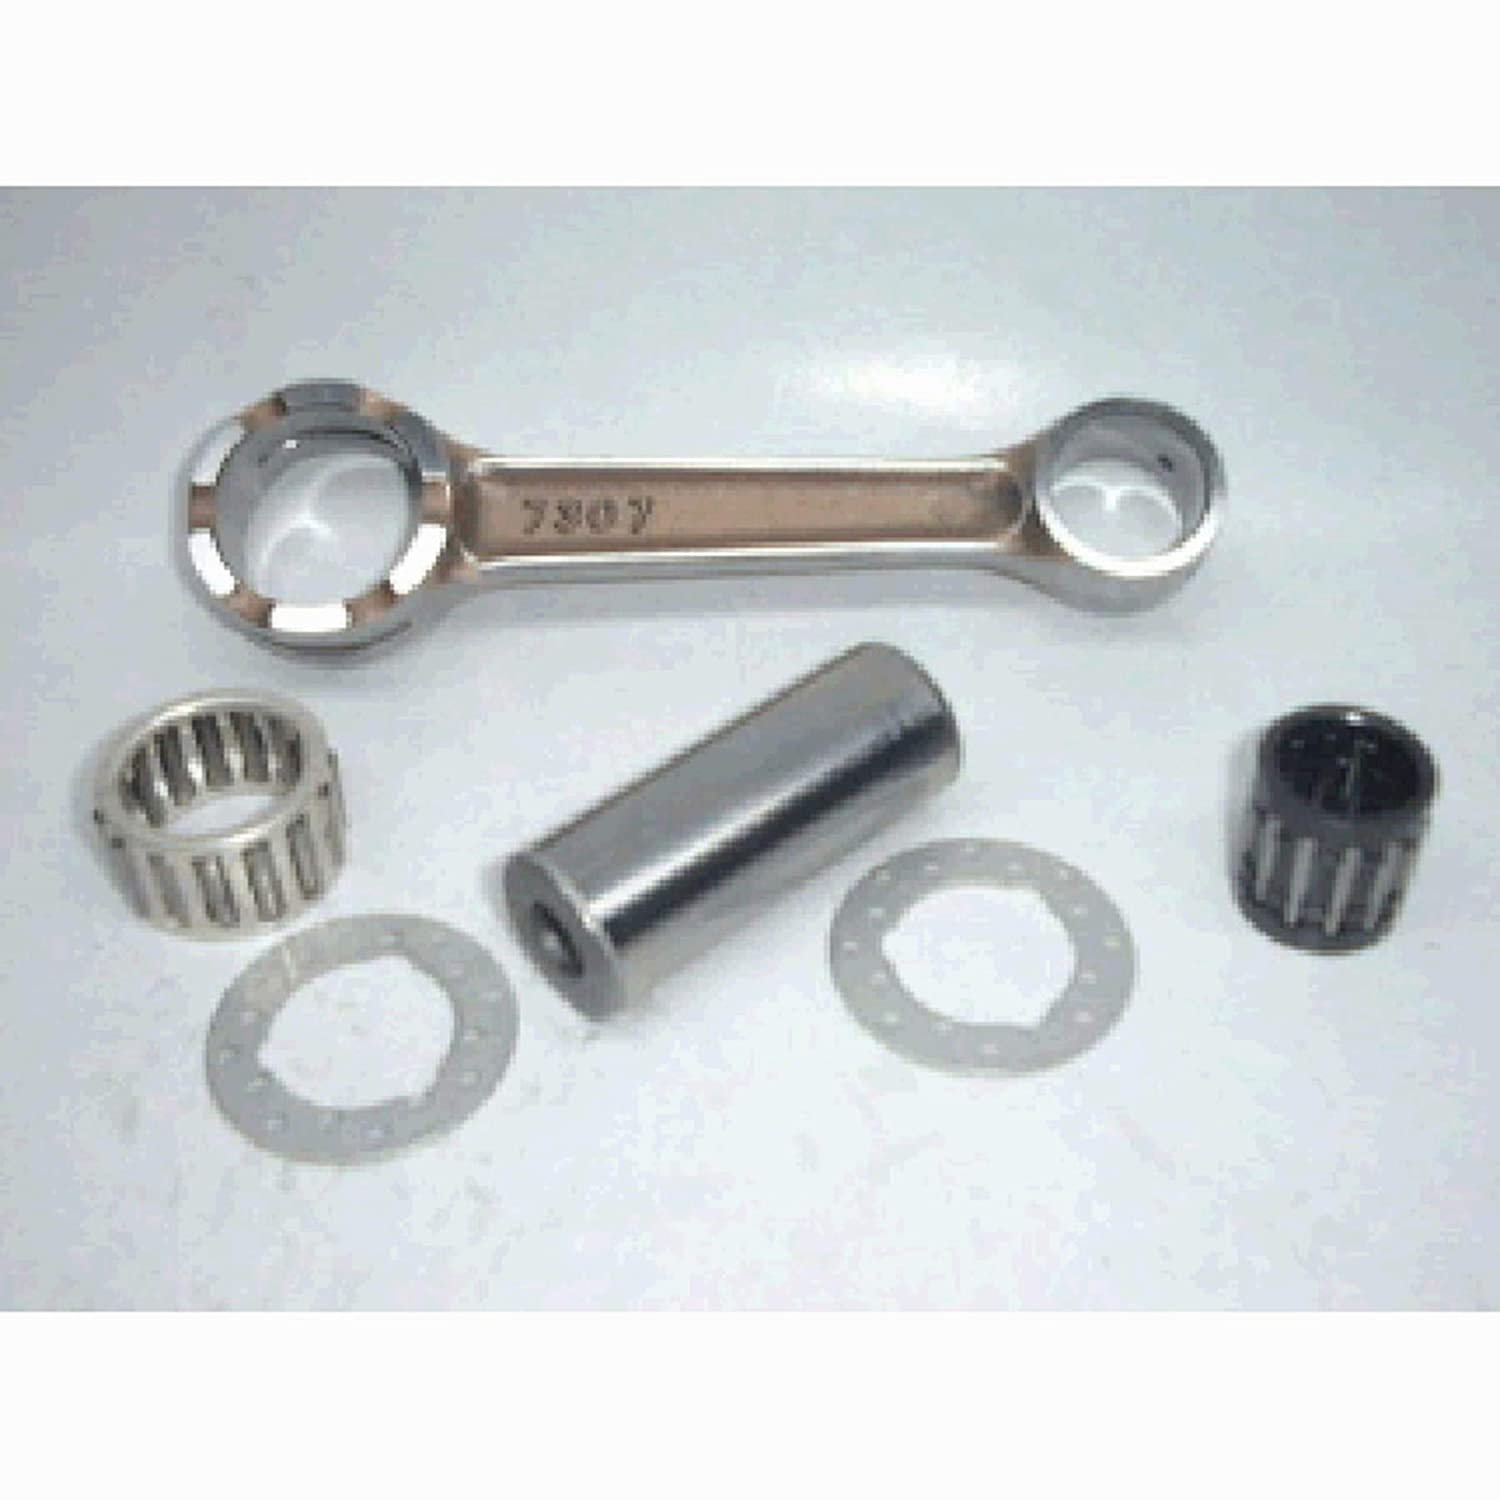 Connecting Rod Kit 1996 Yamaha YFS200 Blaster ATV